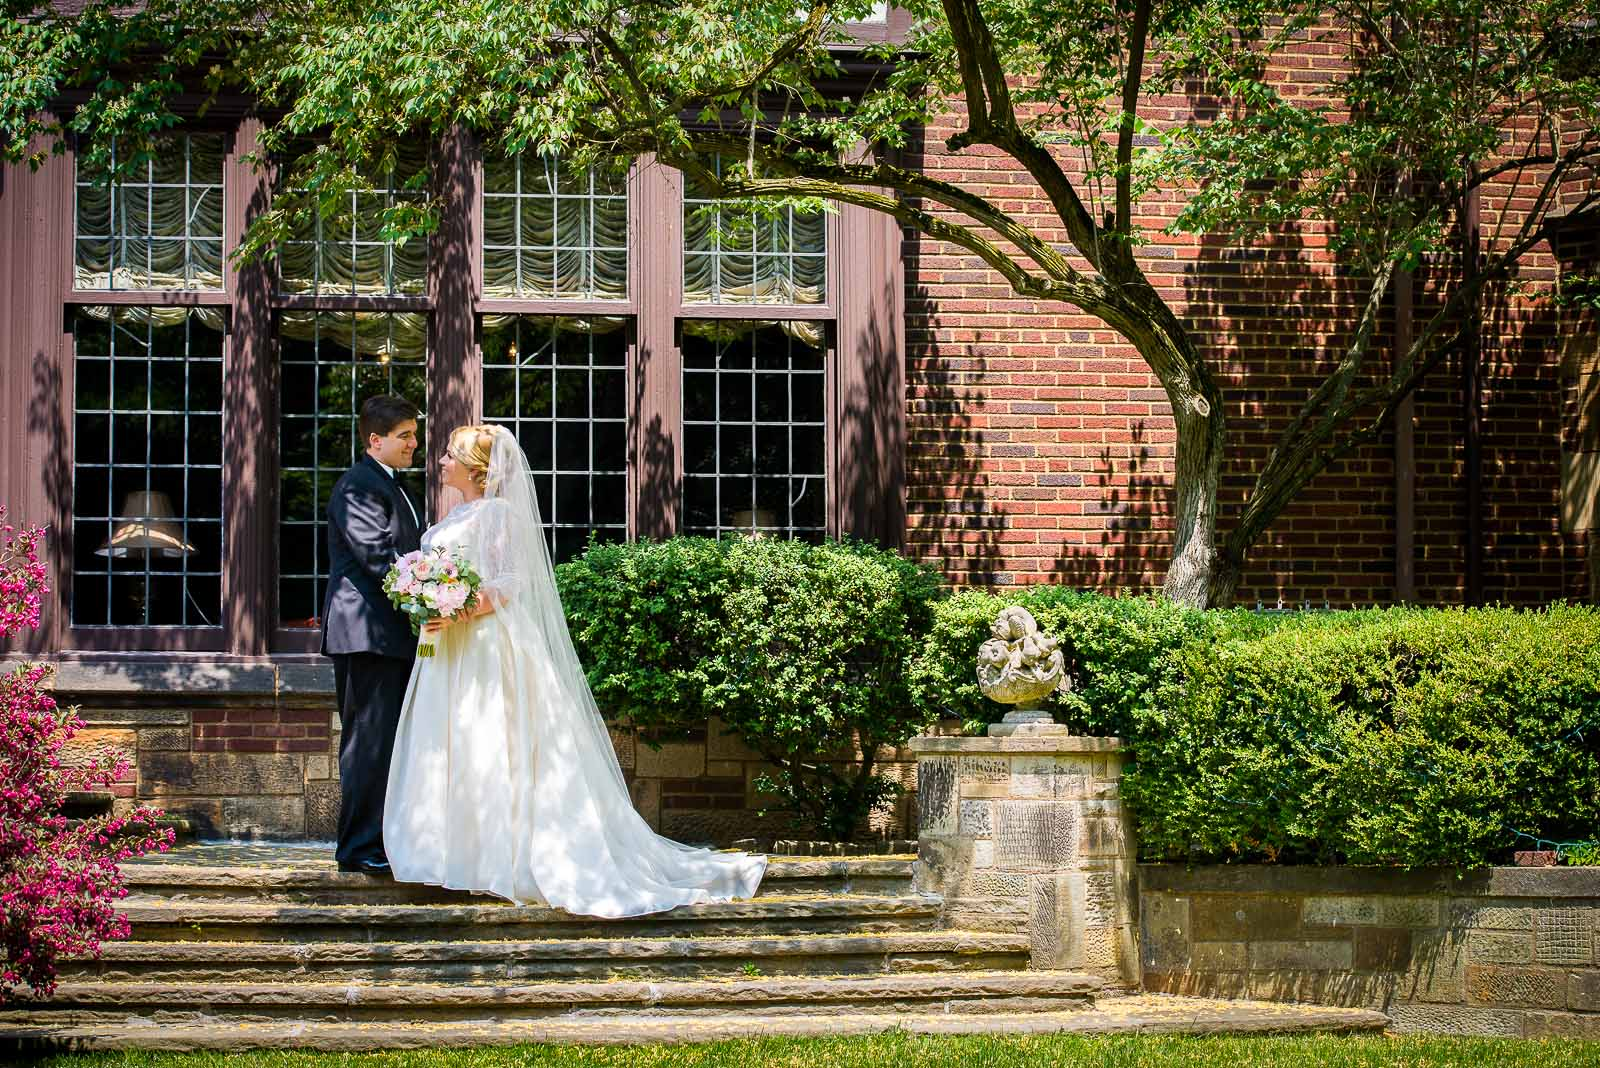 eric_and_christy_photographers_blog_wedding_emilypeter-15